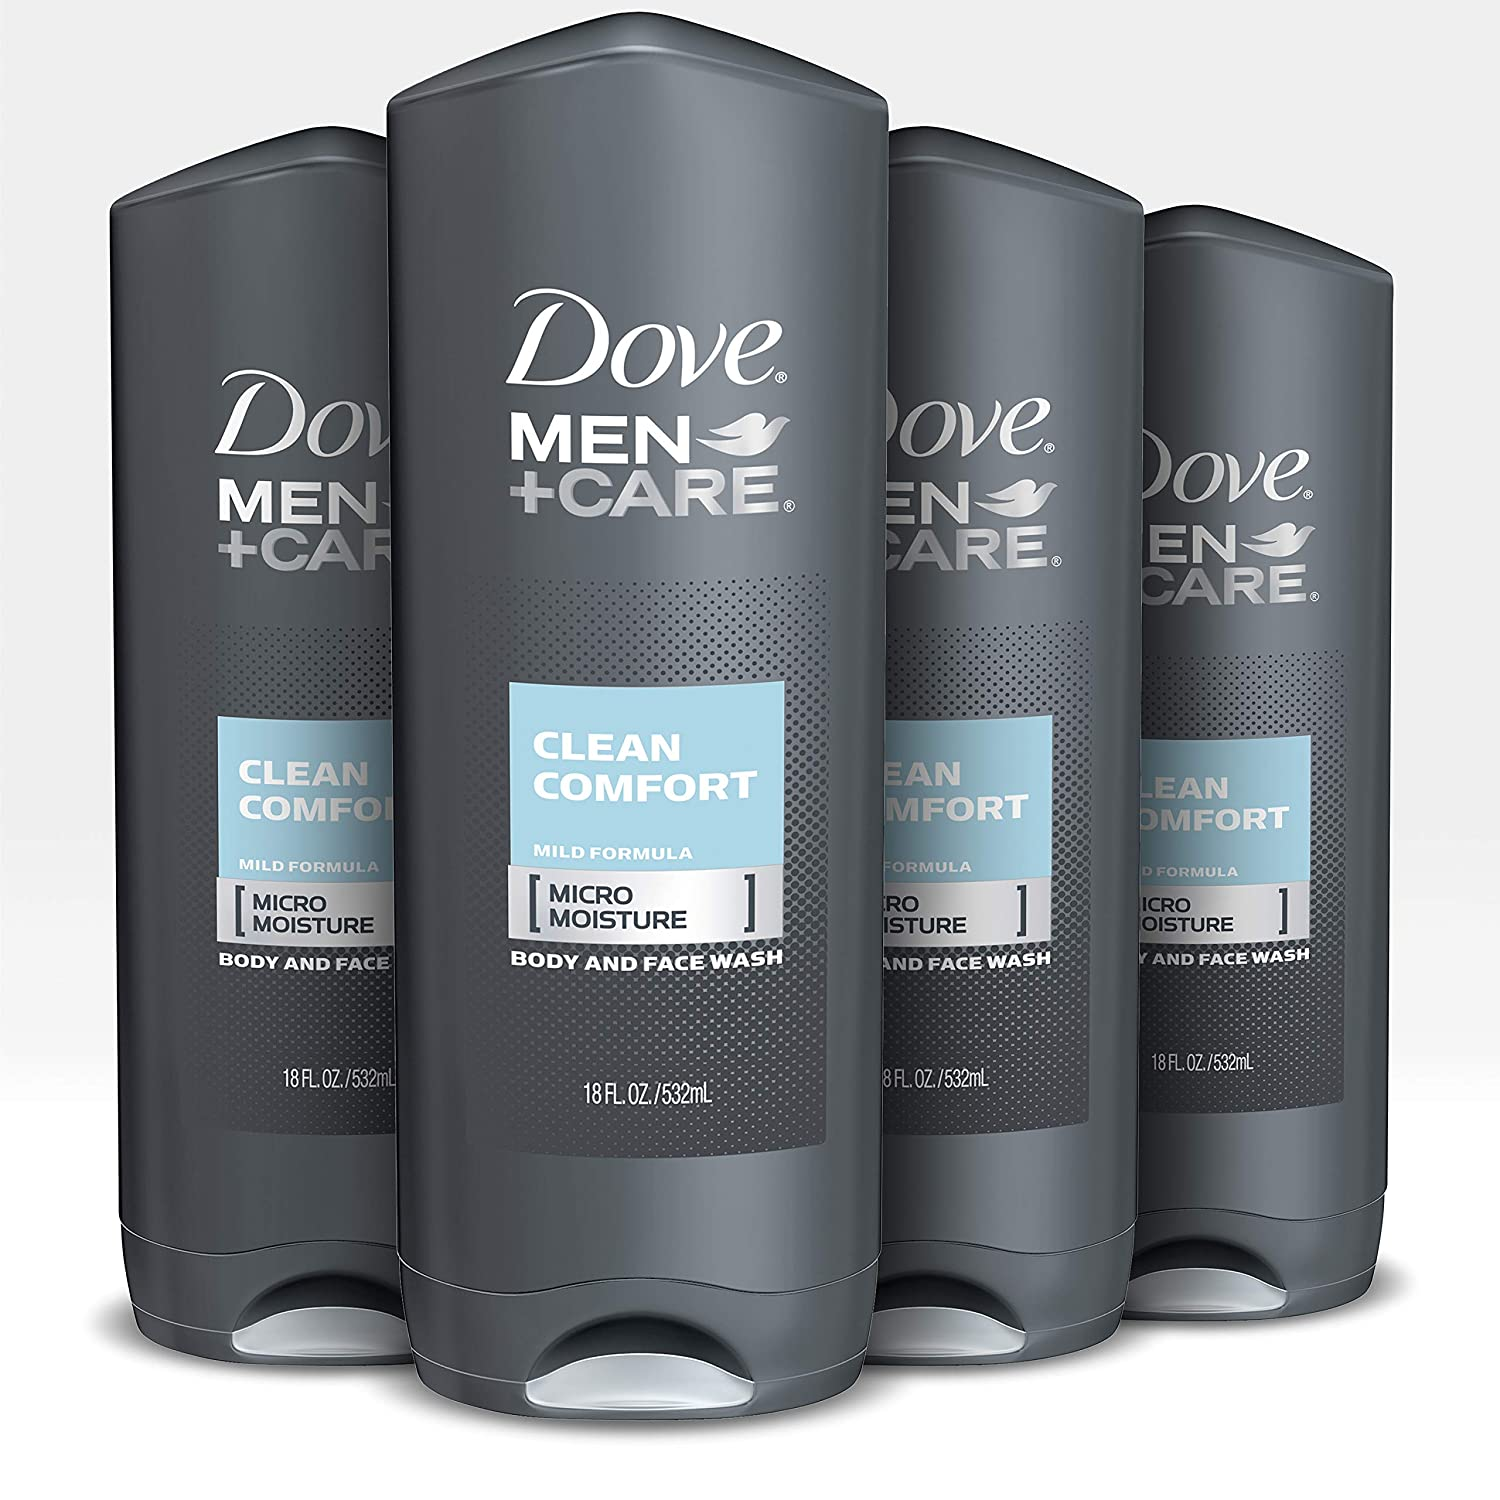 Dove Men+Care Body Wash and Shower Gel Extra Fresh 18 oz 4 Count Dermatologist Recommended Shower Gel and Bodywash Effectively Washes Away Bacteria While Nourishing Your Skin: Beauty